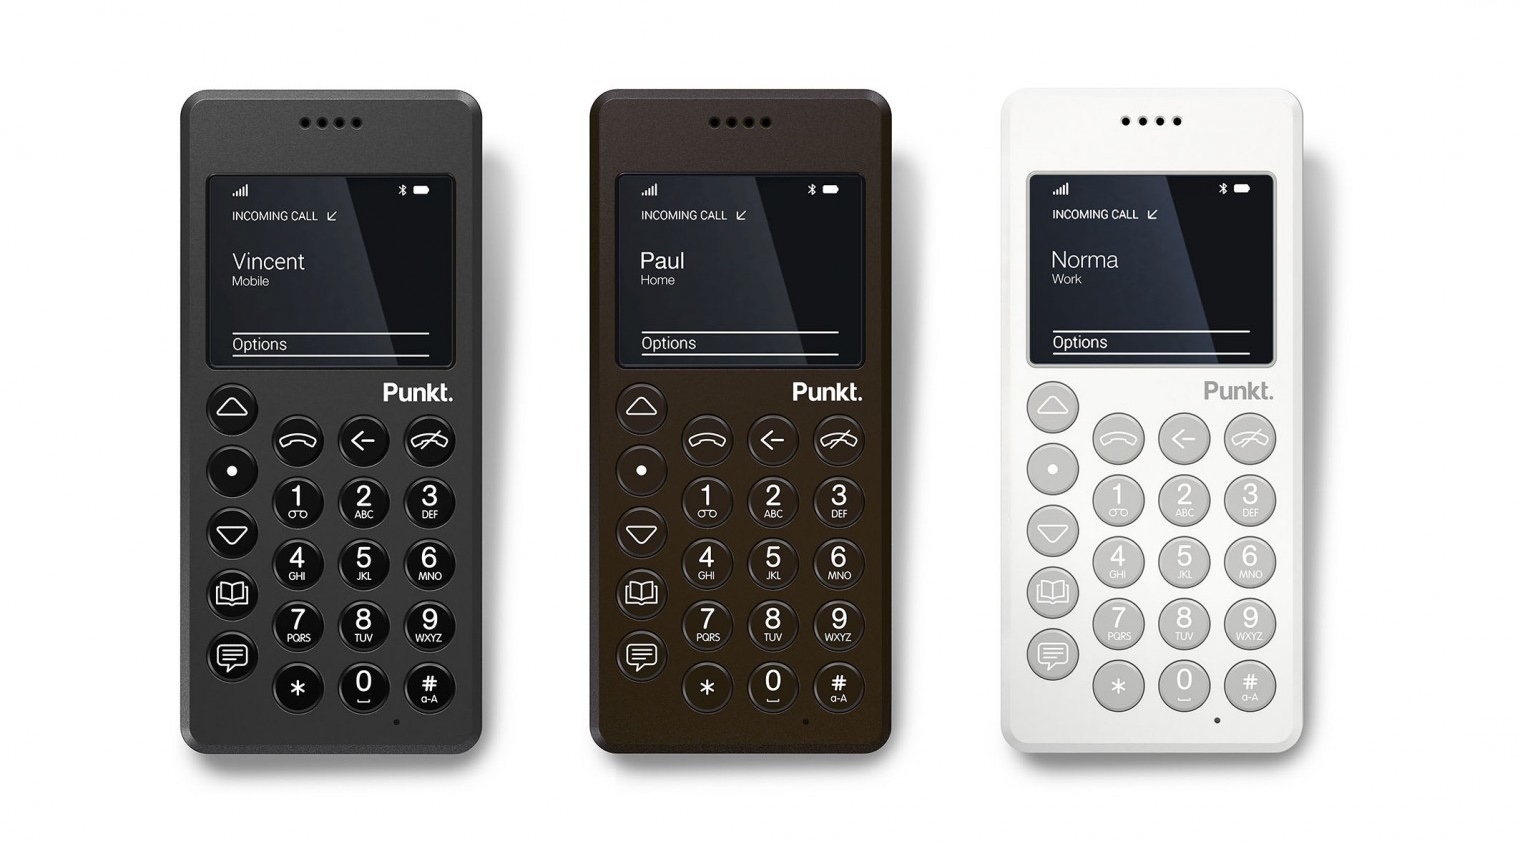 The MP01 is available in three hues: black, brown and white. Image via Punkt.